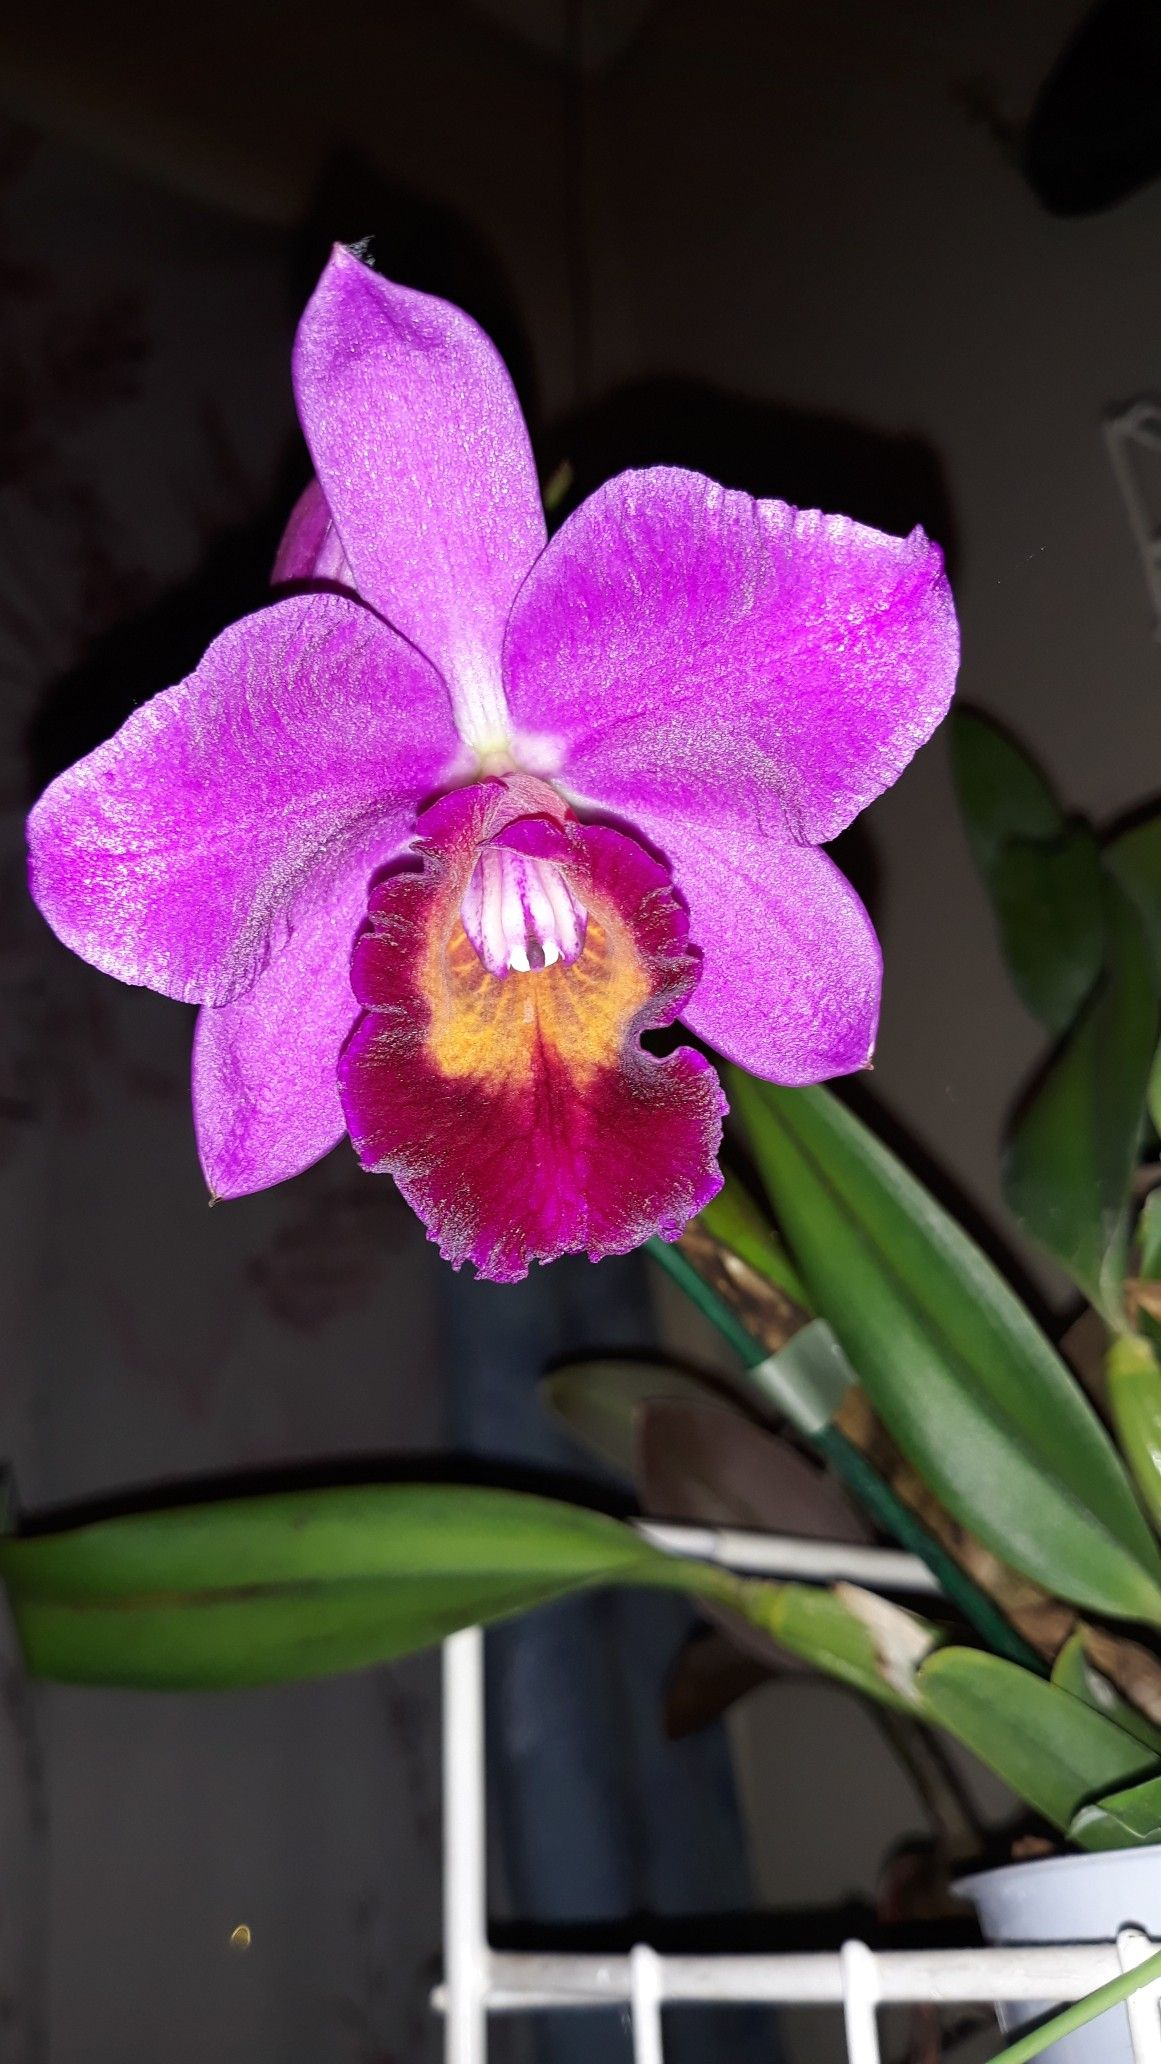 Pin by Boglárka Berki on Orchids (With images) Cattleya